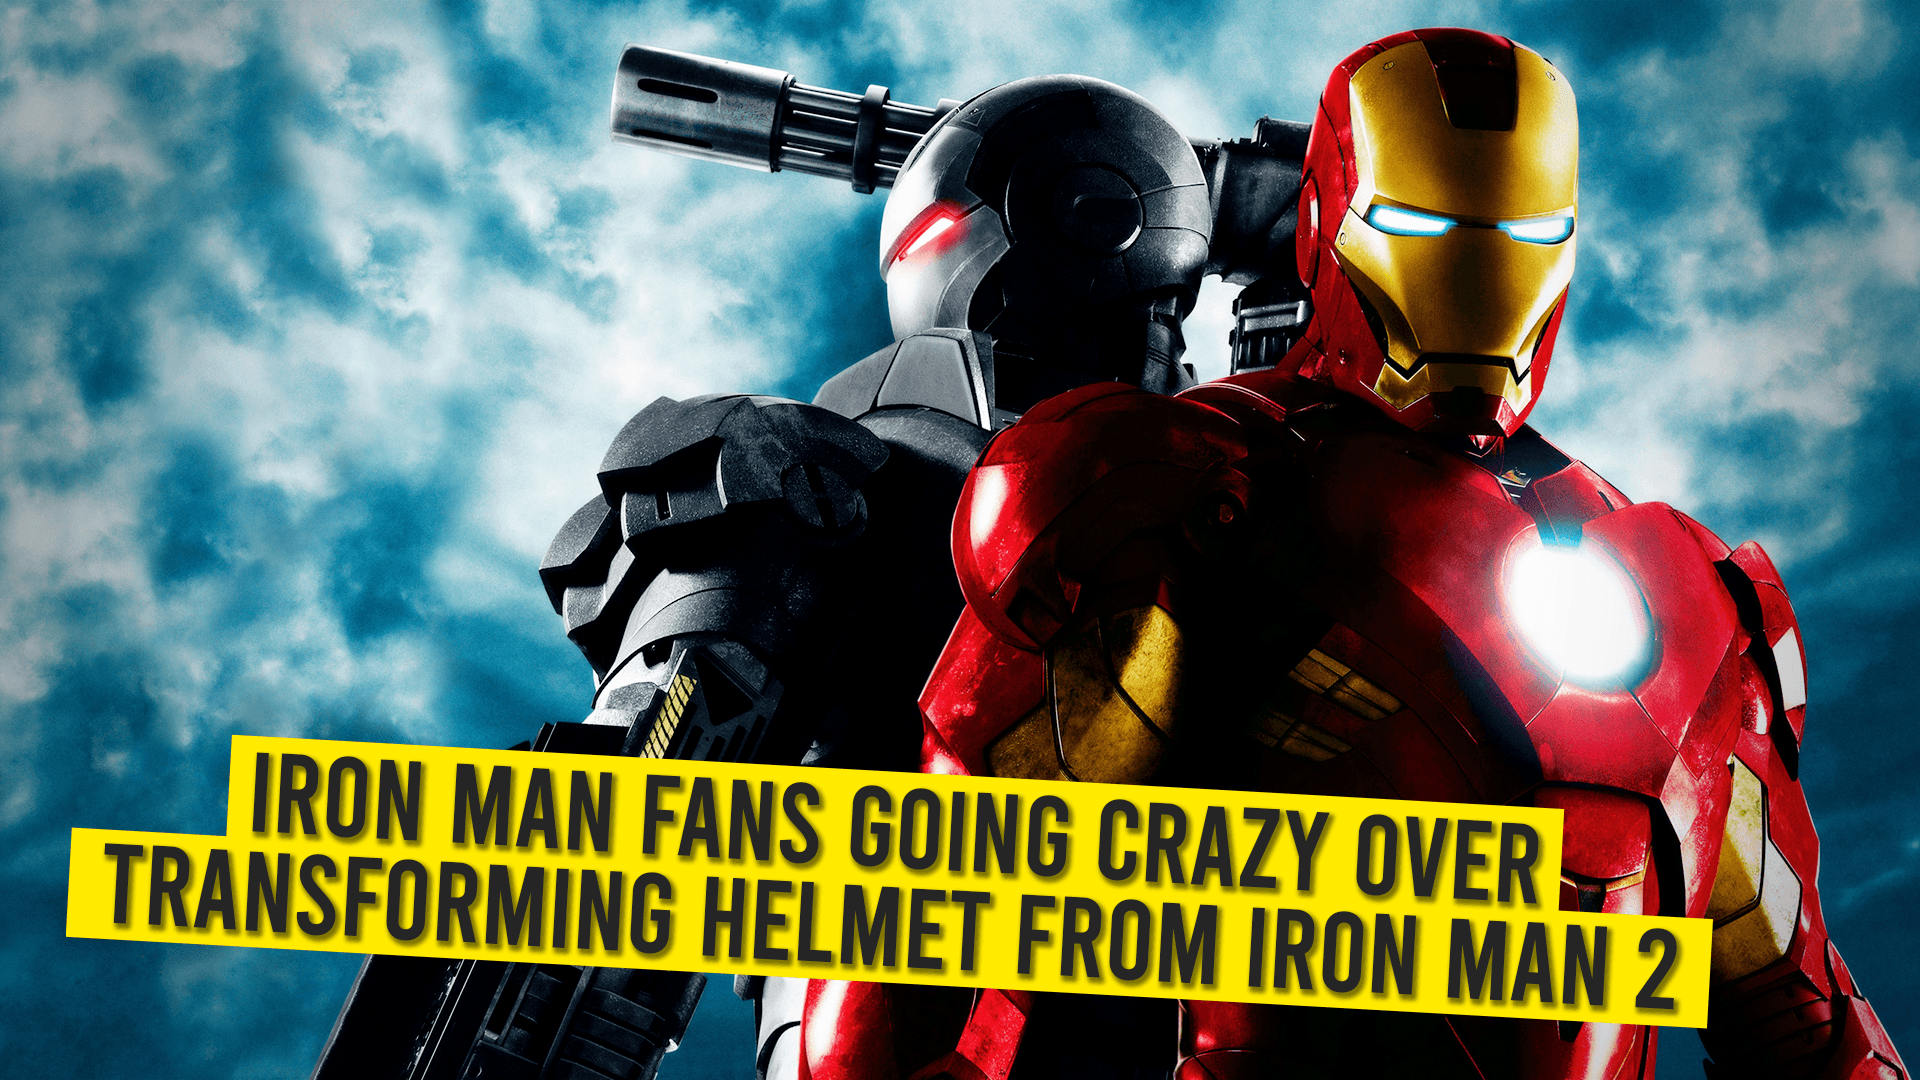 Iron Man Fans Going Crazy Over Transforming Helmet From Iron Man 2